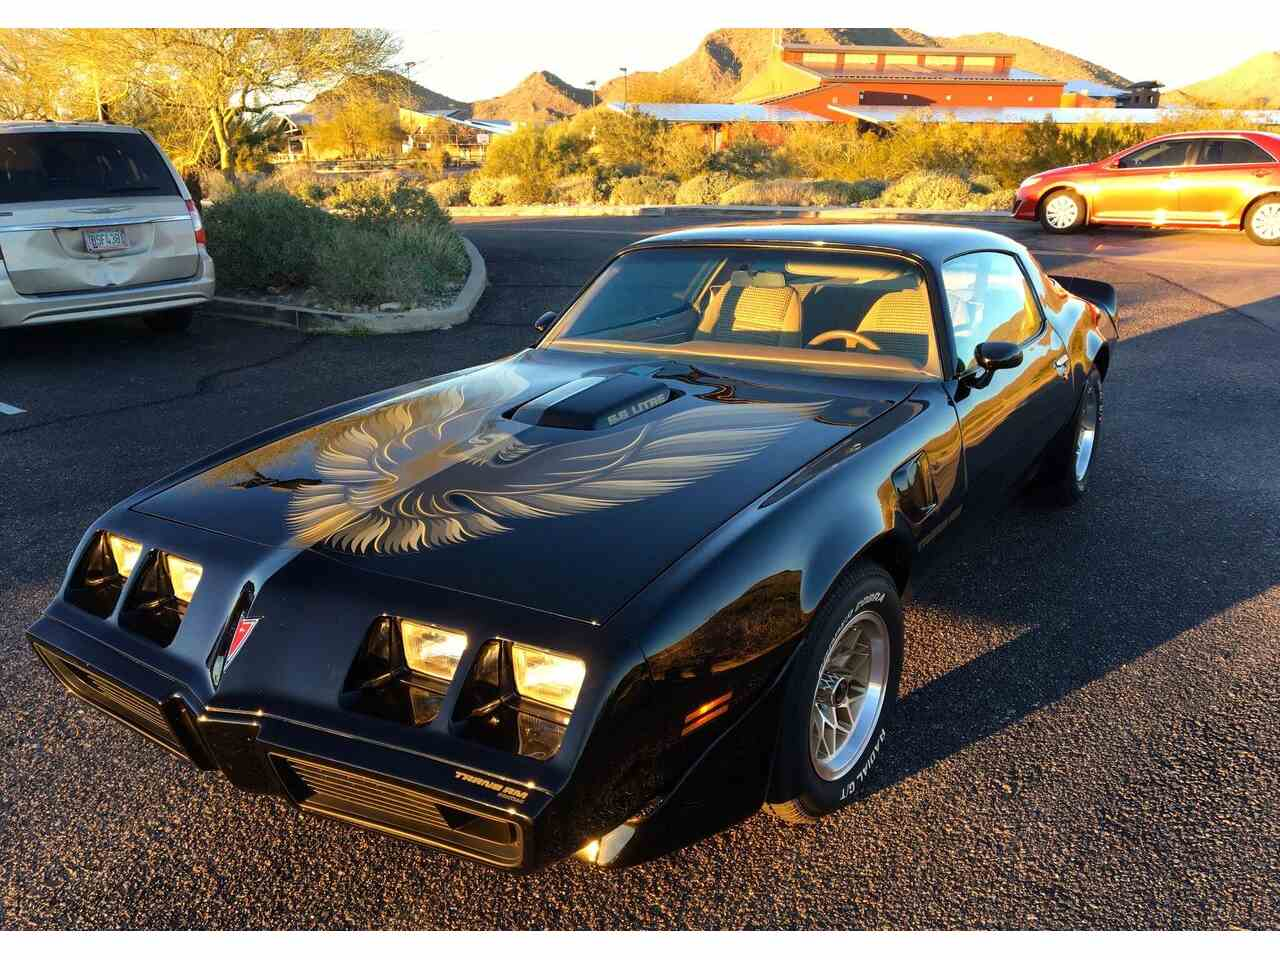 Large Picture of '79 Pontiac Firebird Trans Am located in Scottsdale Arizona - $48,000.00 Offered by a Private Seller - KNSK